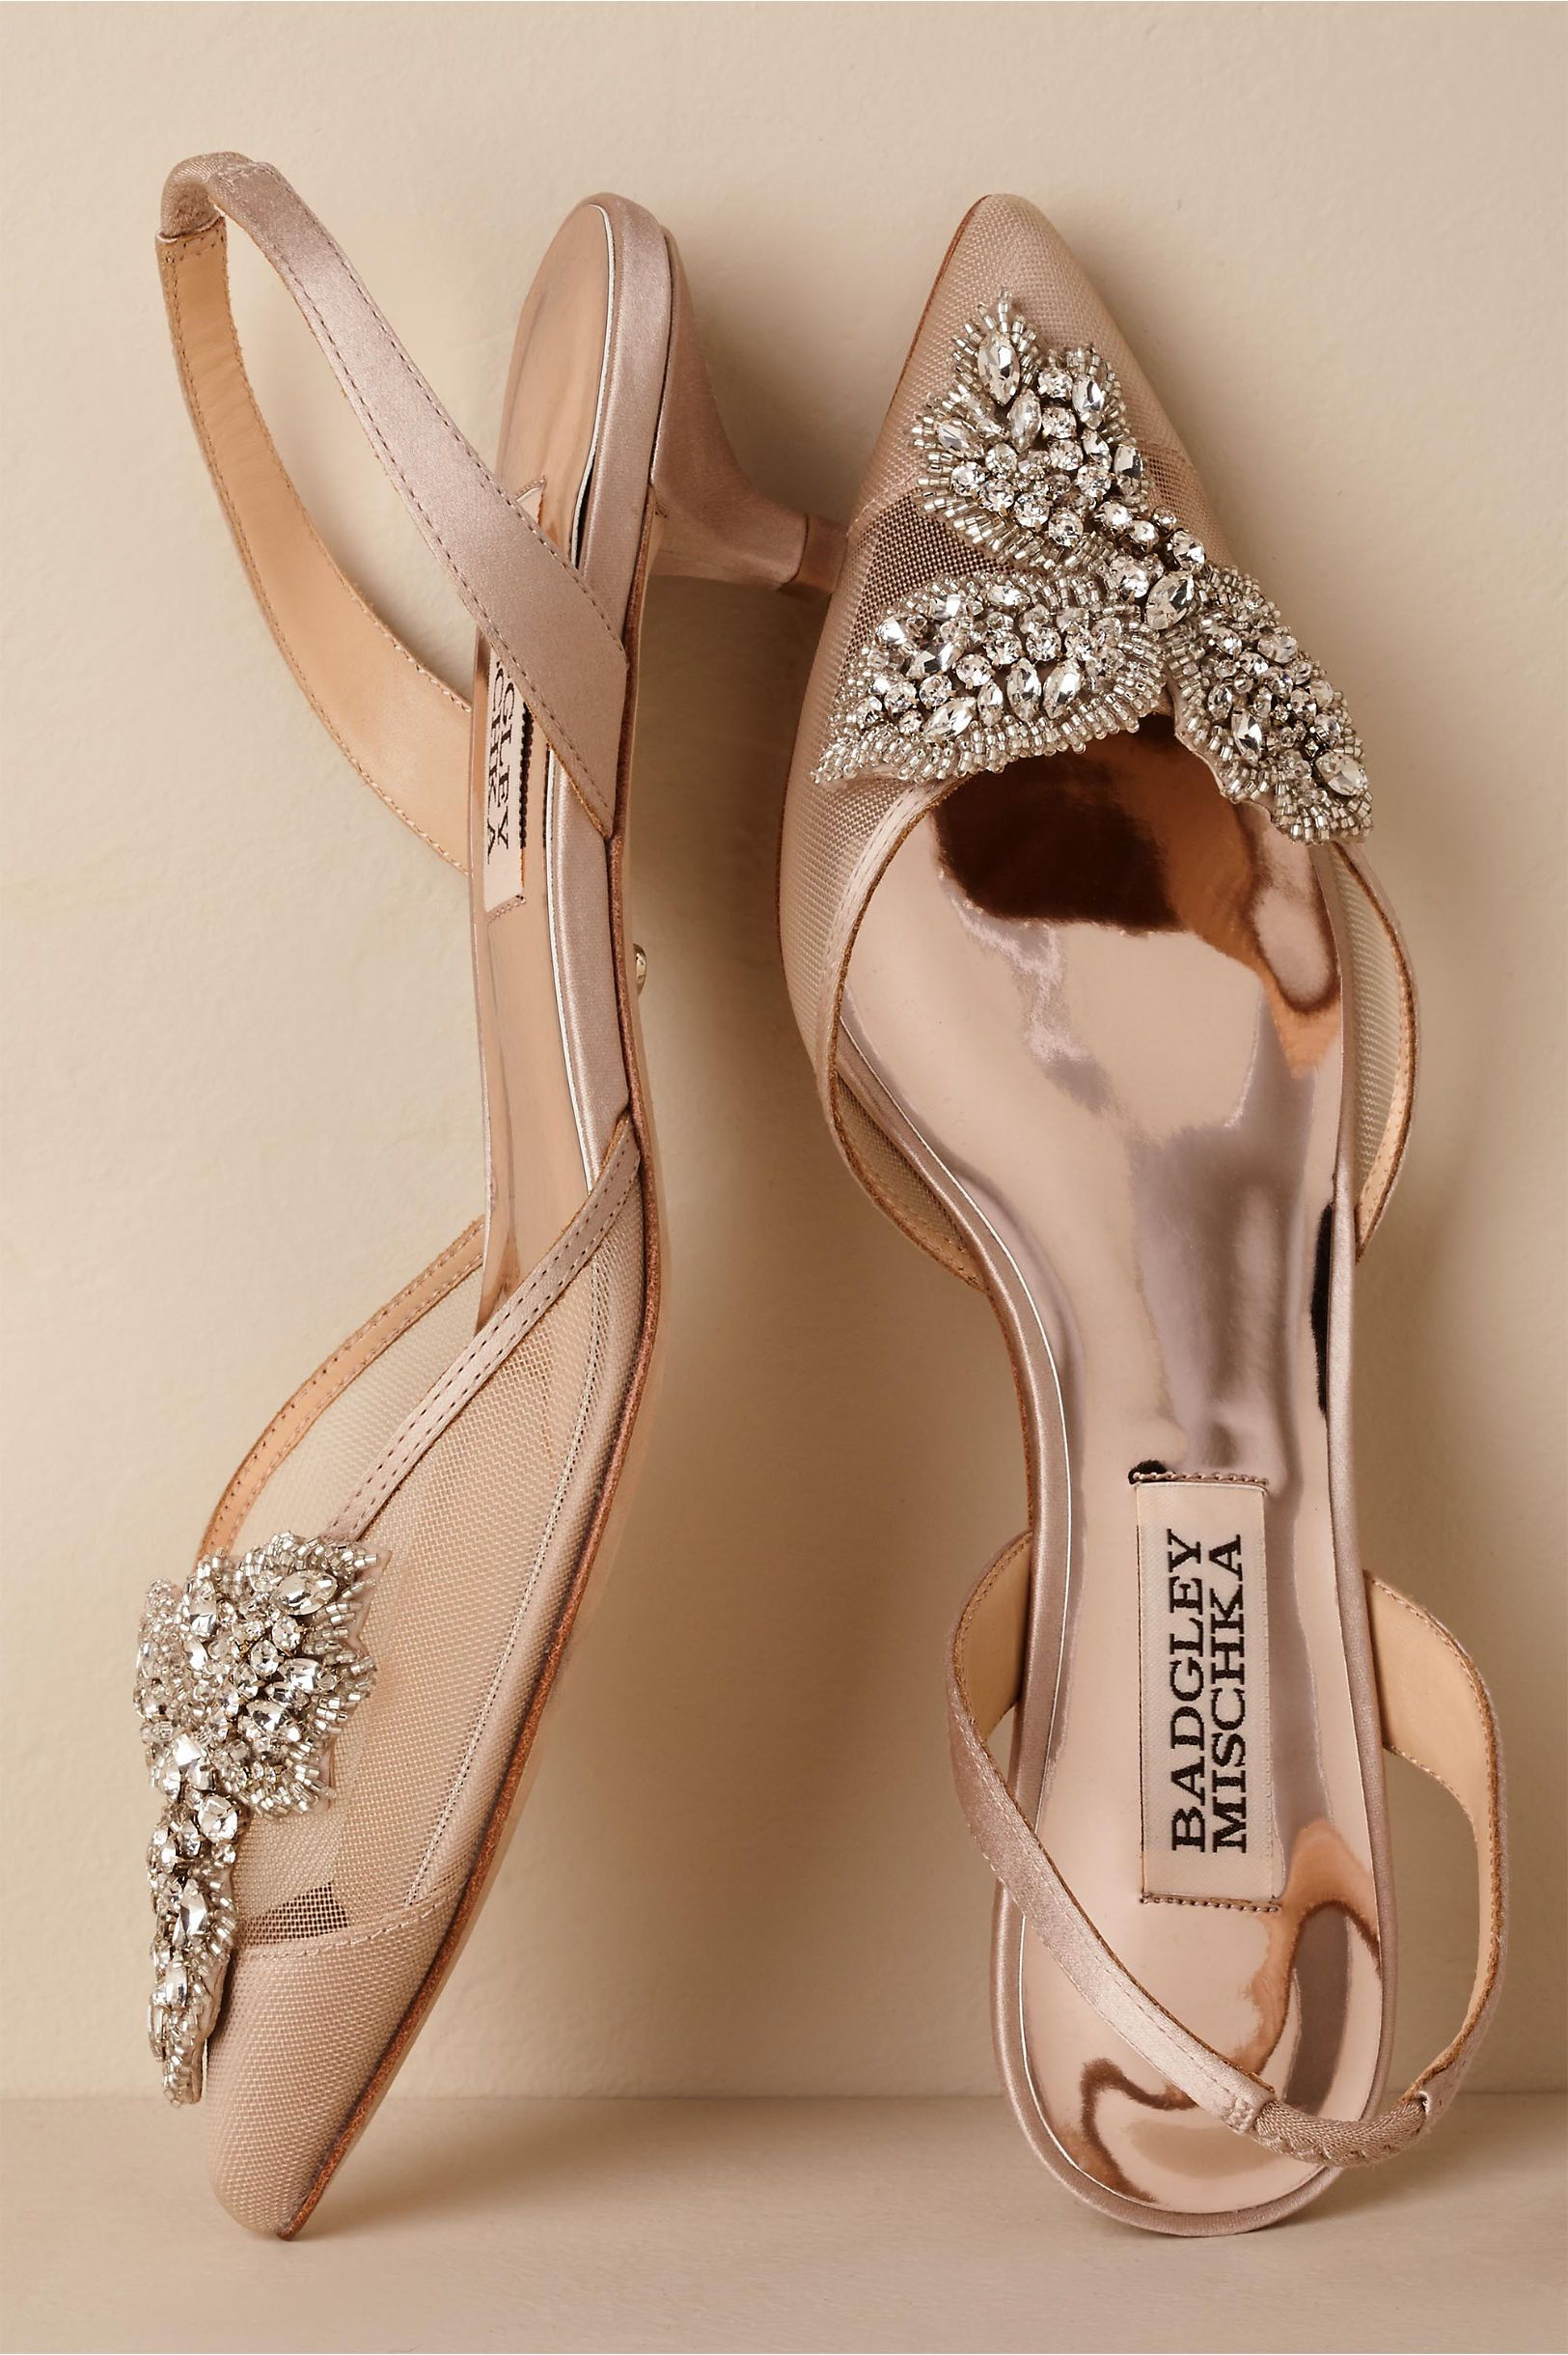 Badgley Mischka Vera Slingback Heels In 2020 Bride Shoes Bridal